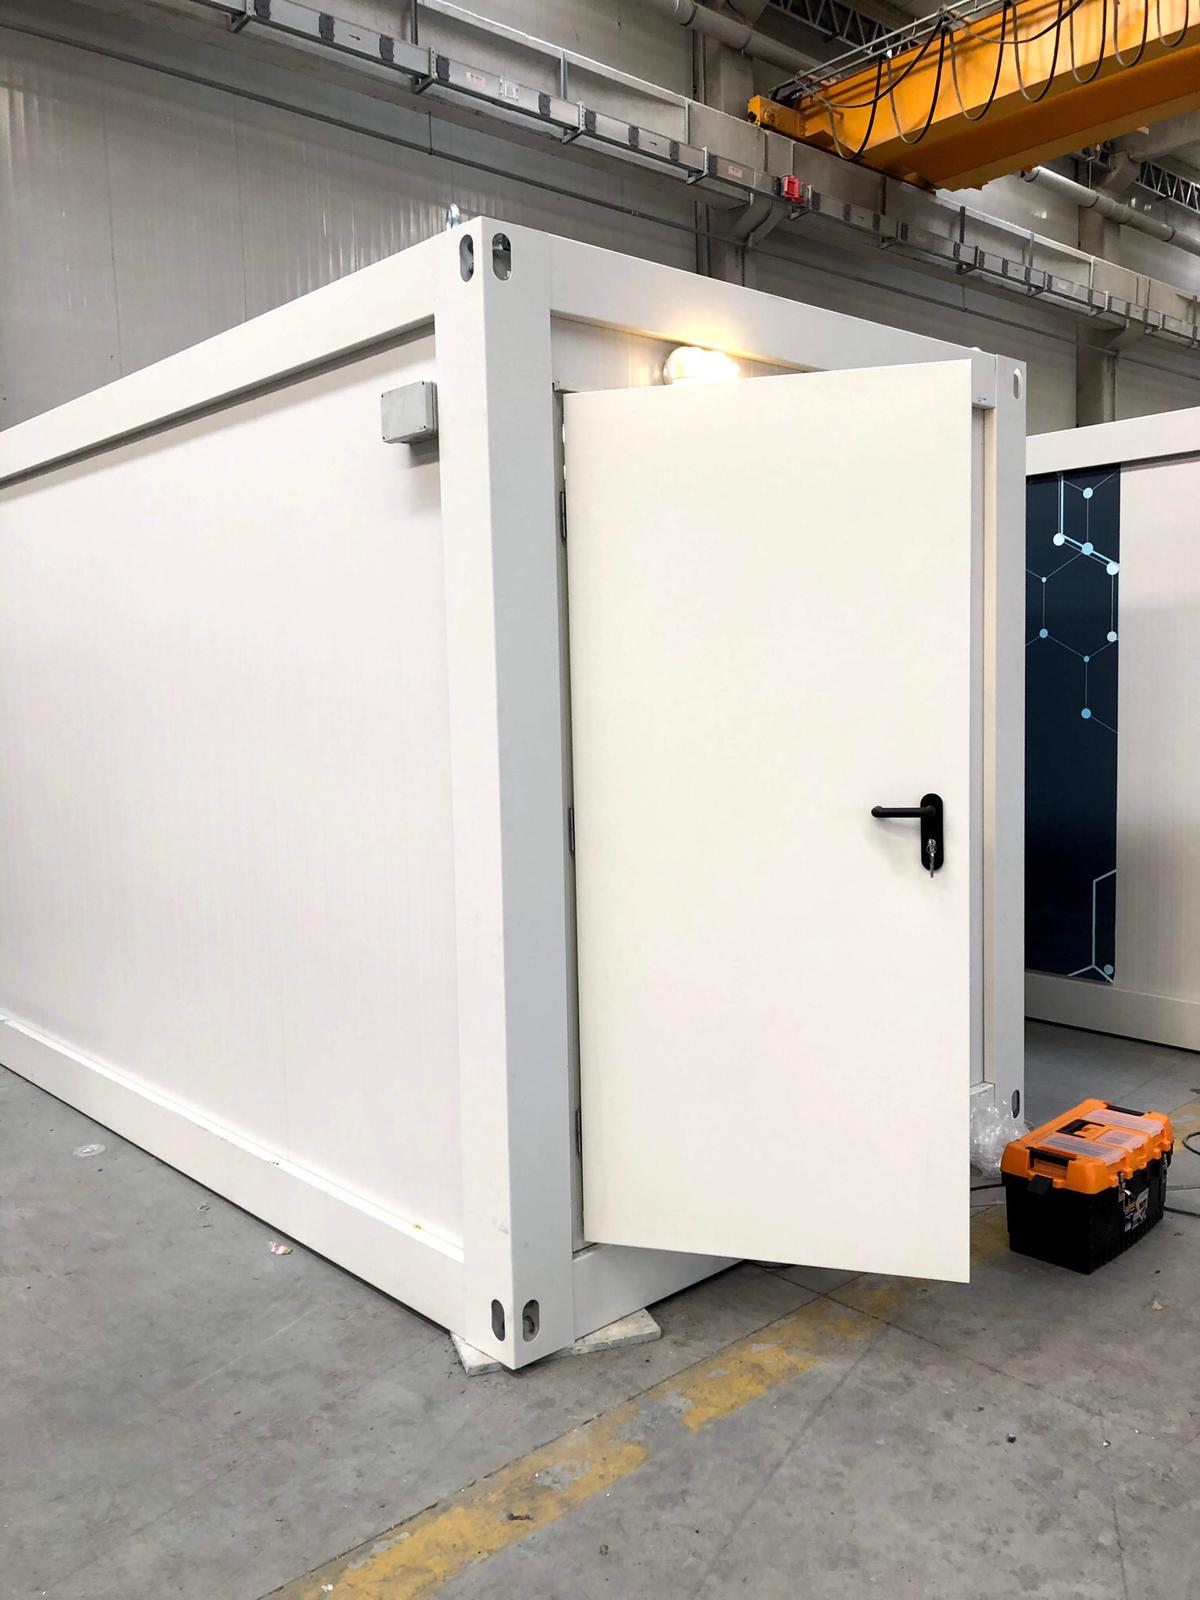 ANGOLA-Telecom-Network-Container-Shelter-Electrical-Room-Server-Ehouse